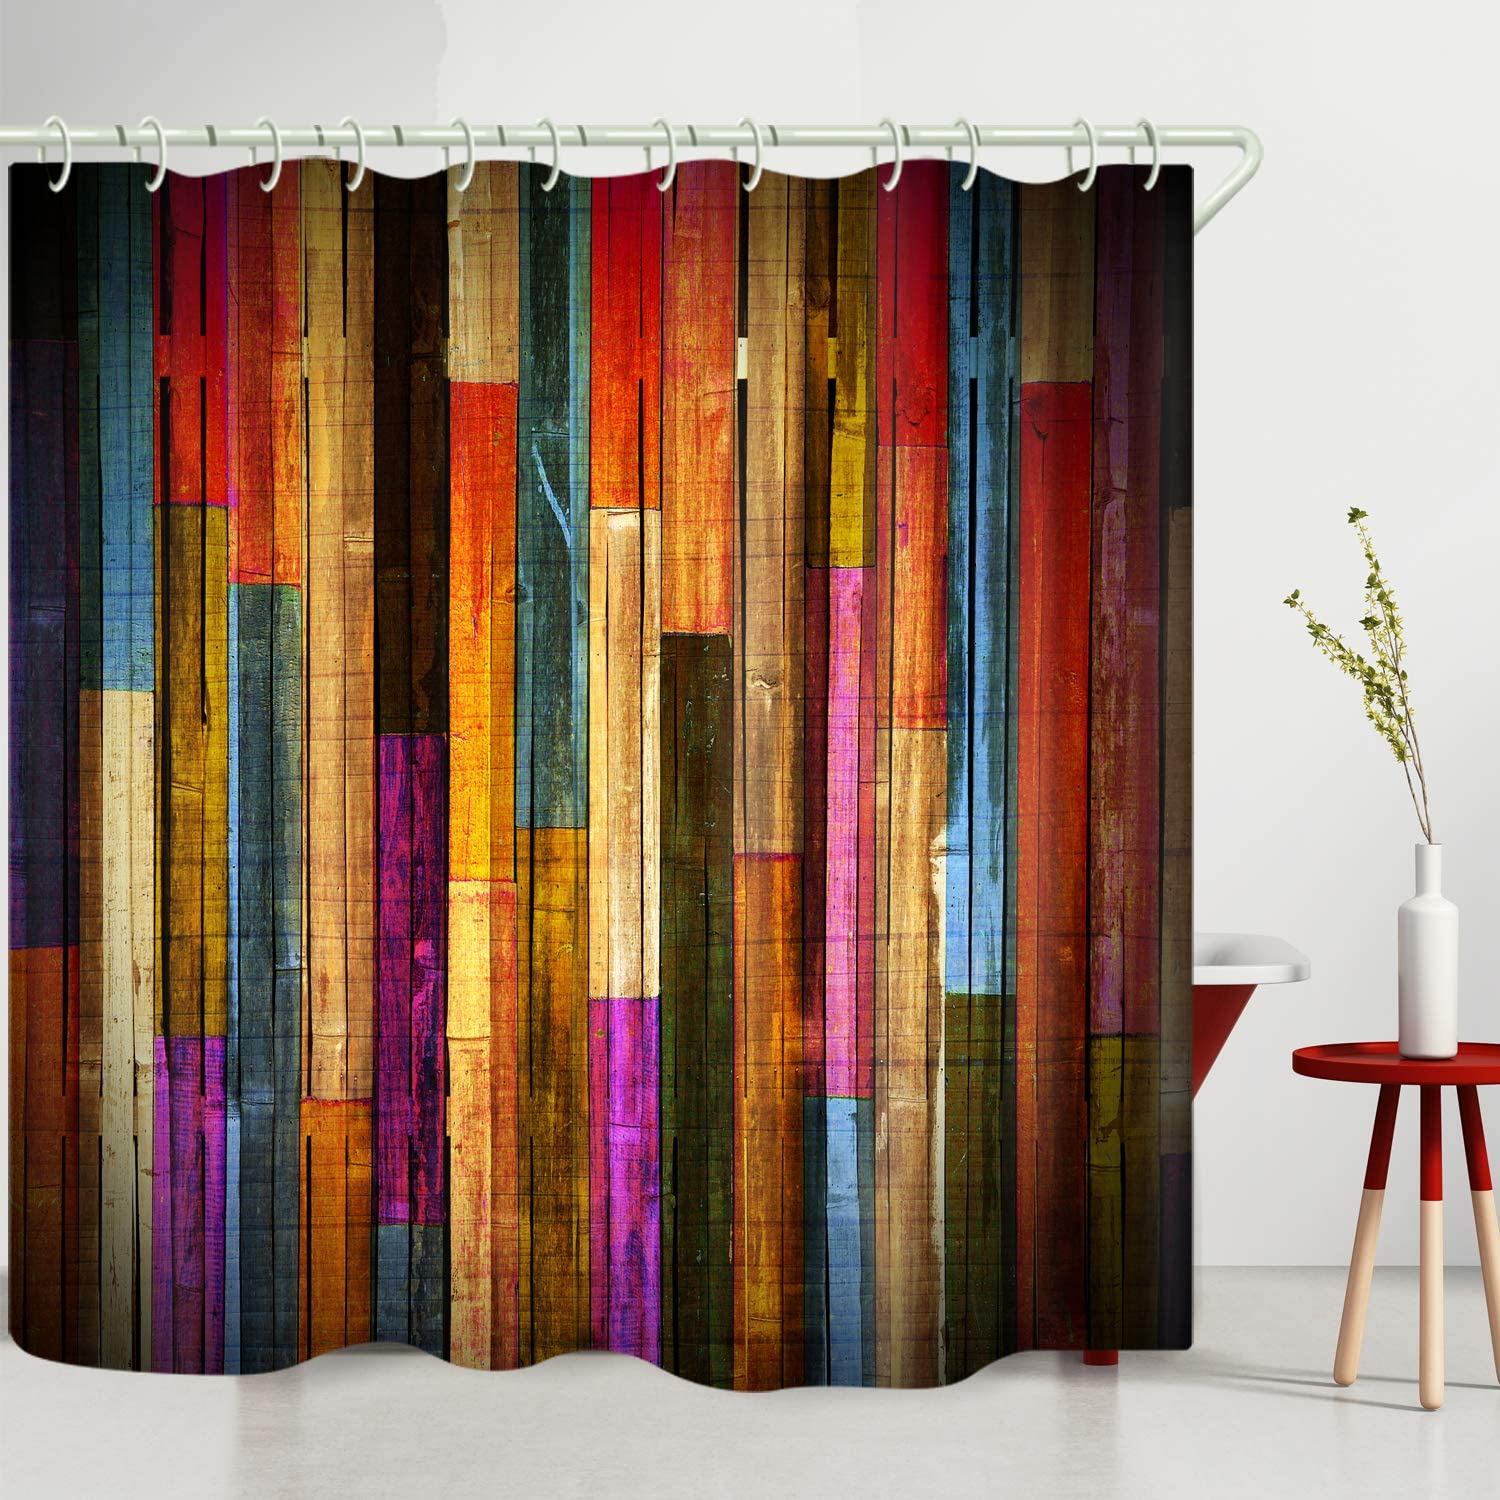 WODEJIA Waterproof Fabric Shower Curtain Liner Paint Wood Print Covered Bathtub Bathroom Curtains Includes 12 Anti Rust Hooks 71 x 72 Inches Multicoloured18 71 x 72 inches